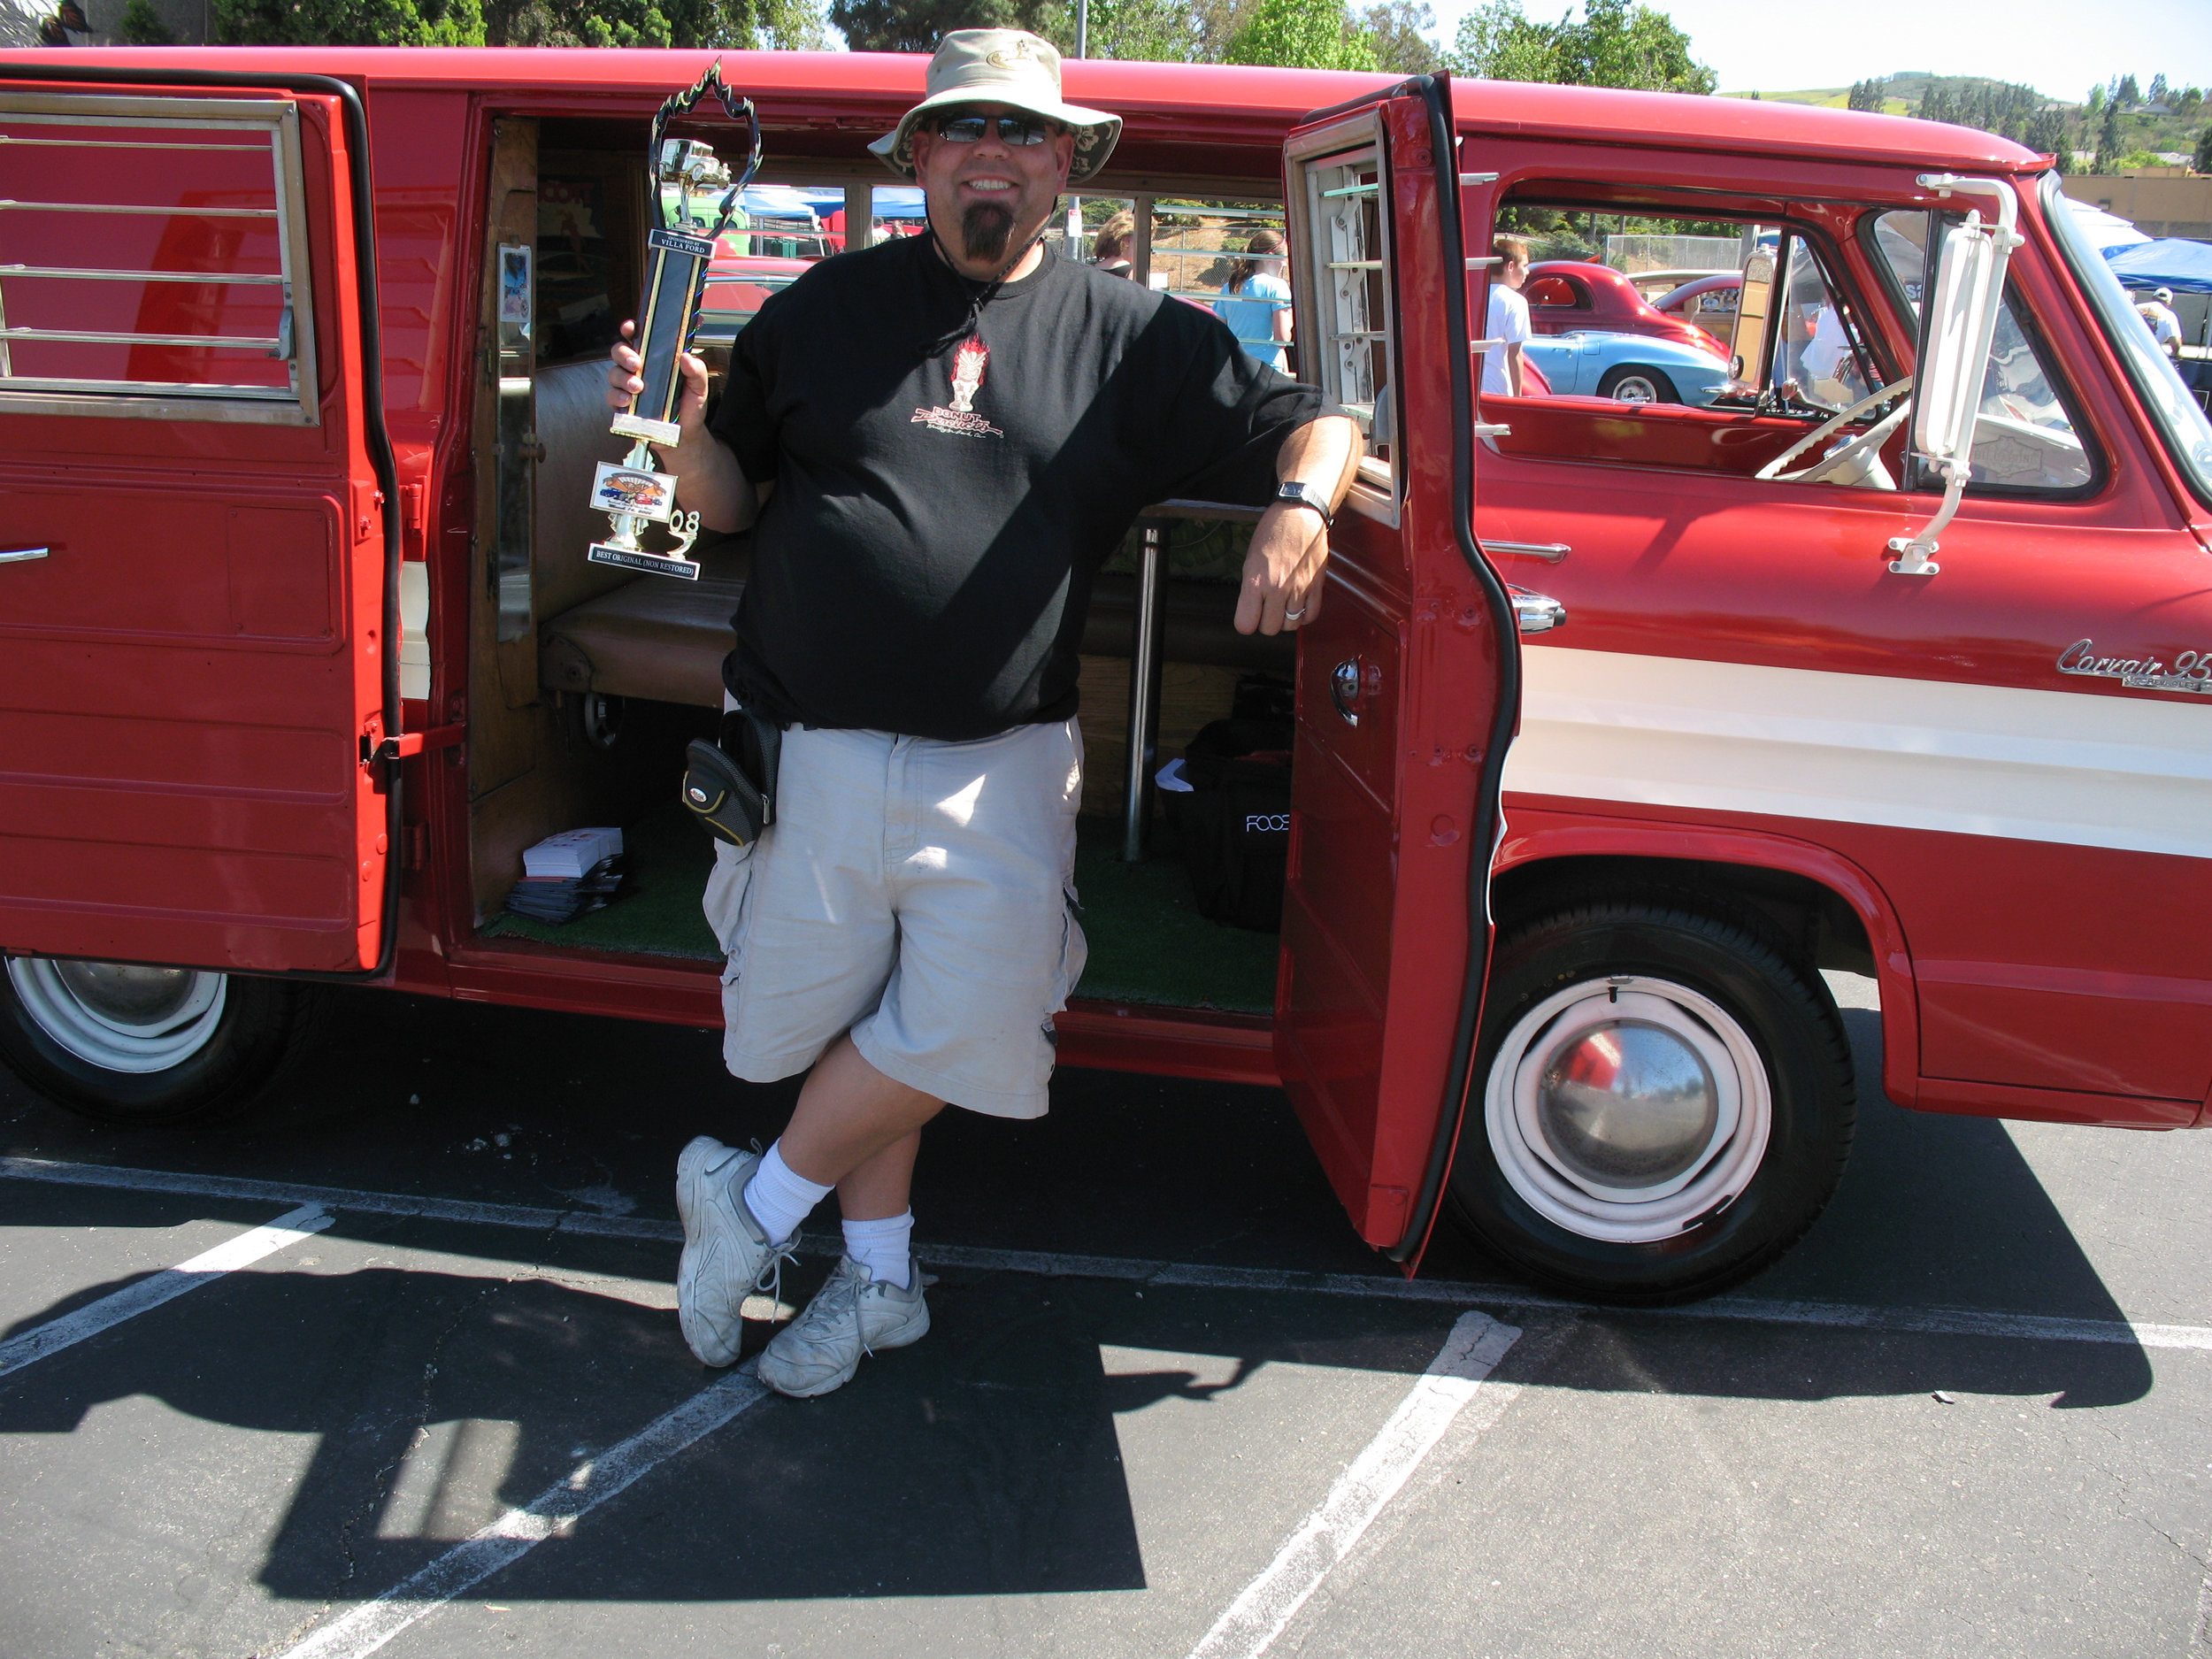 First time I ever won a first-place trophy at a car show - and with a 1964 Corvair Corvan camper